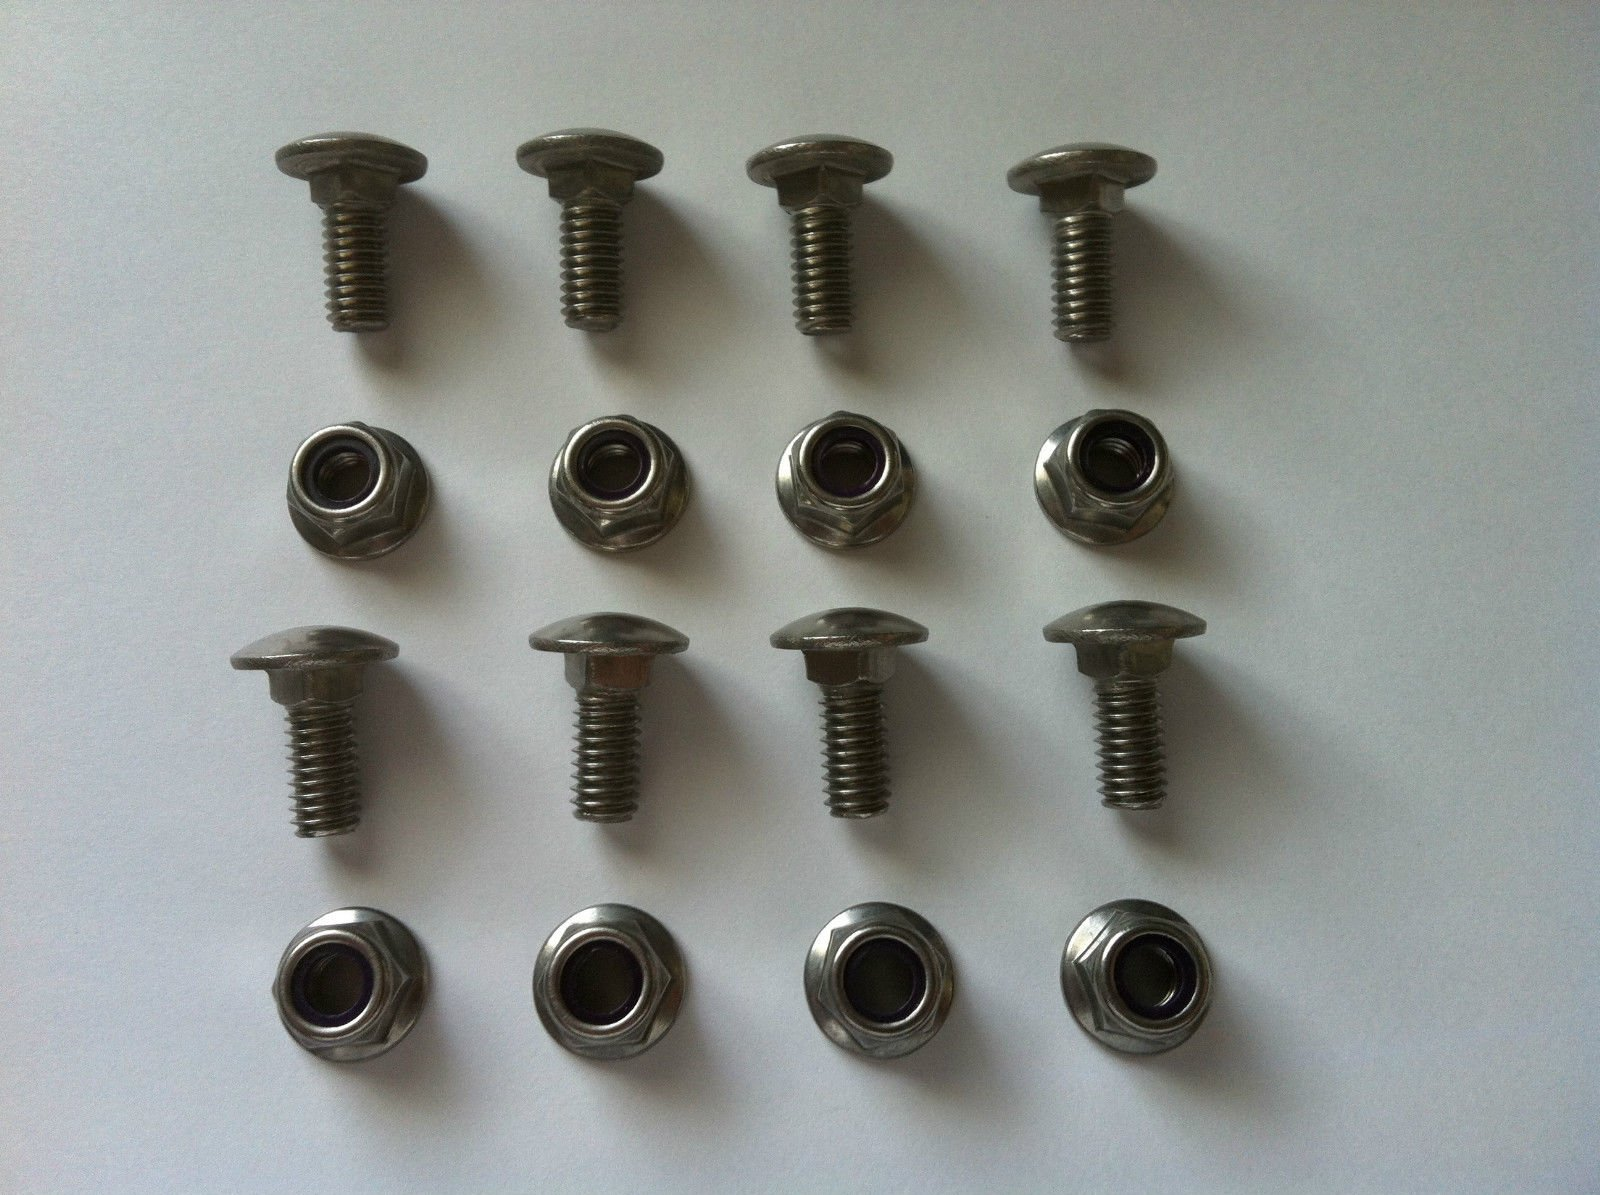 8 Pack - Stainless Steel Replacement Nuts/Bolts for 712-04063 / 710-0451